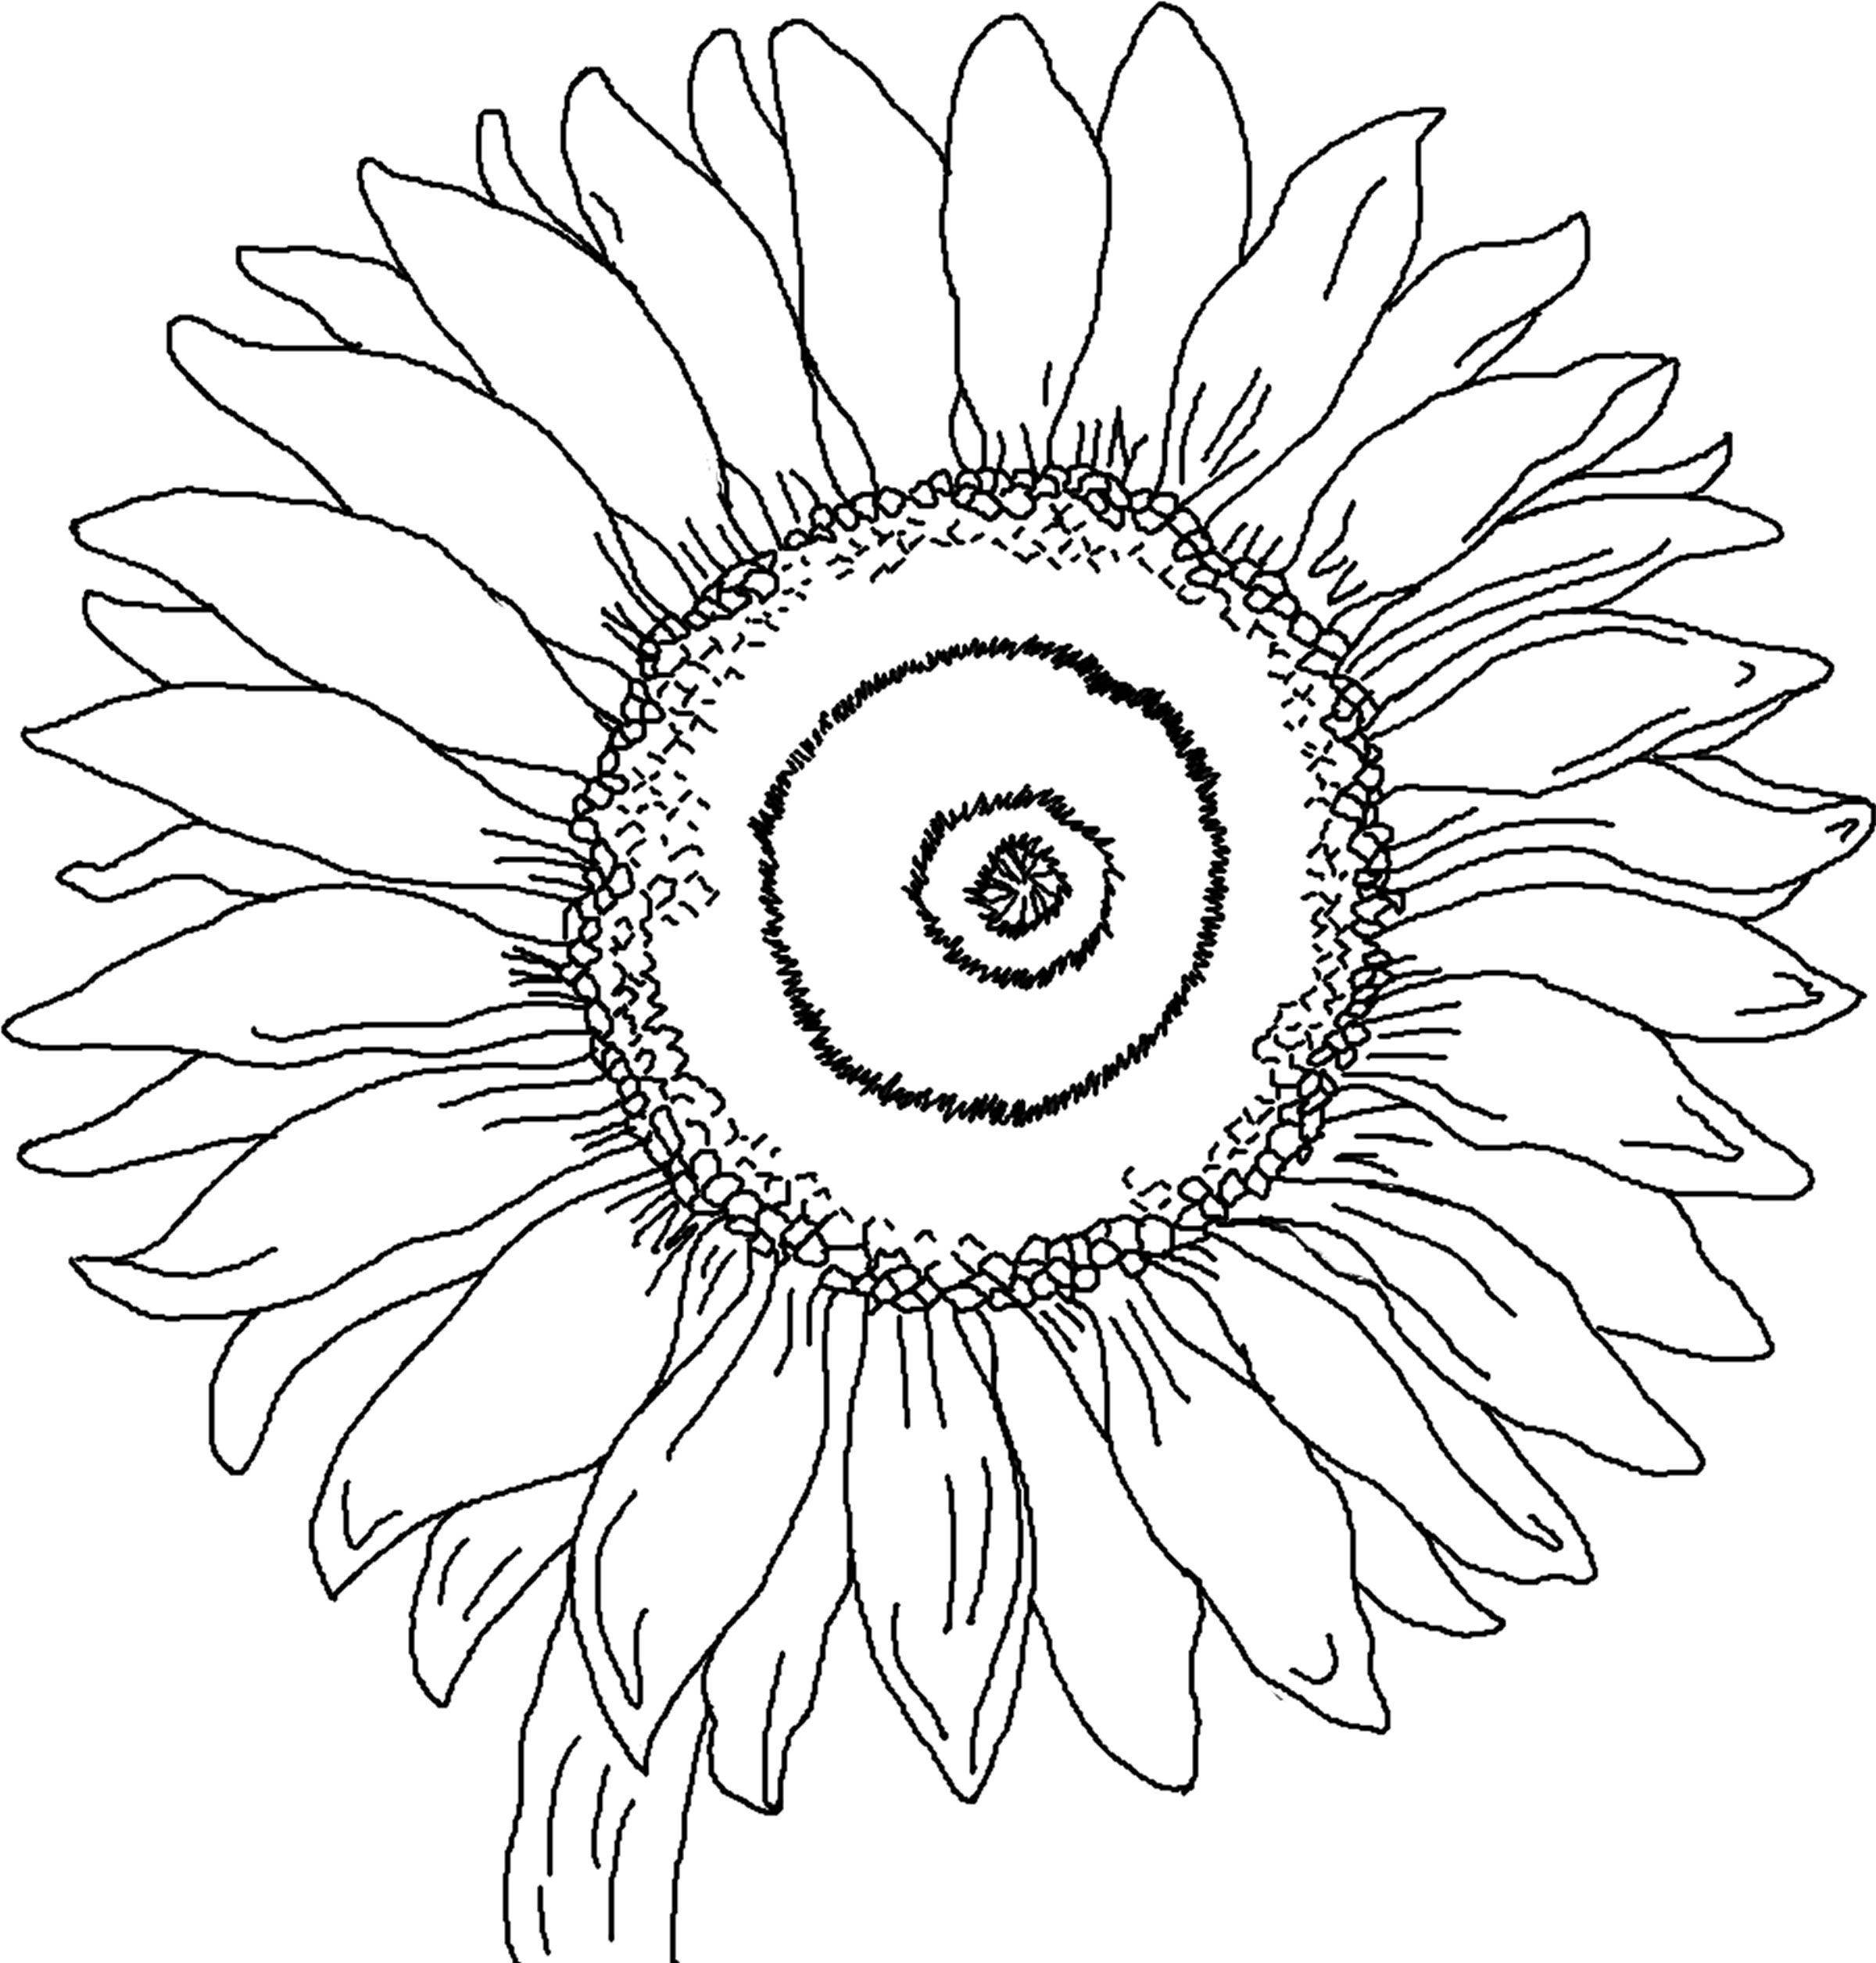 Coloring sunflowers printable